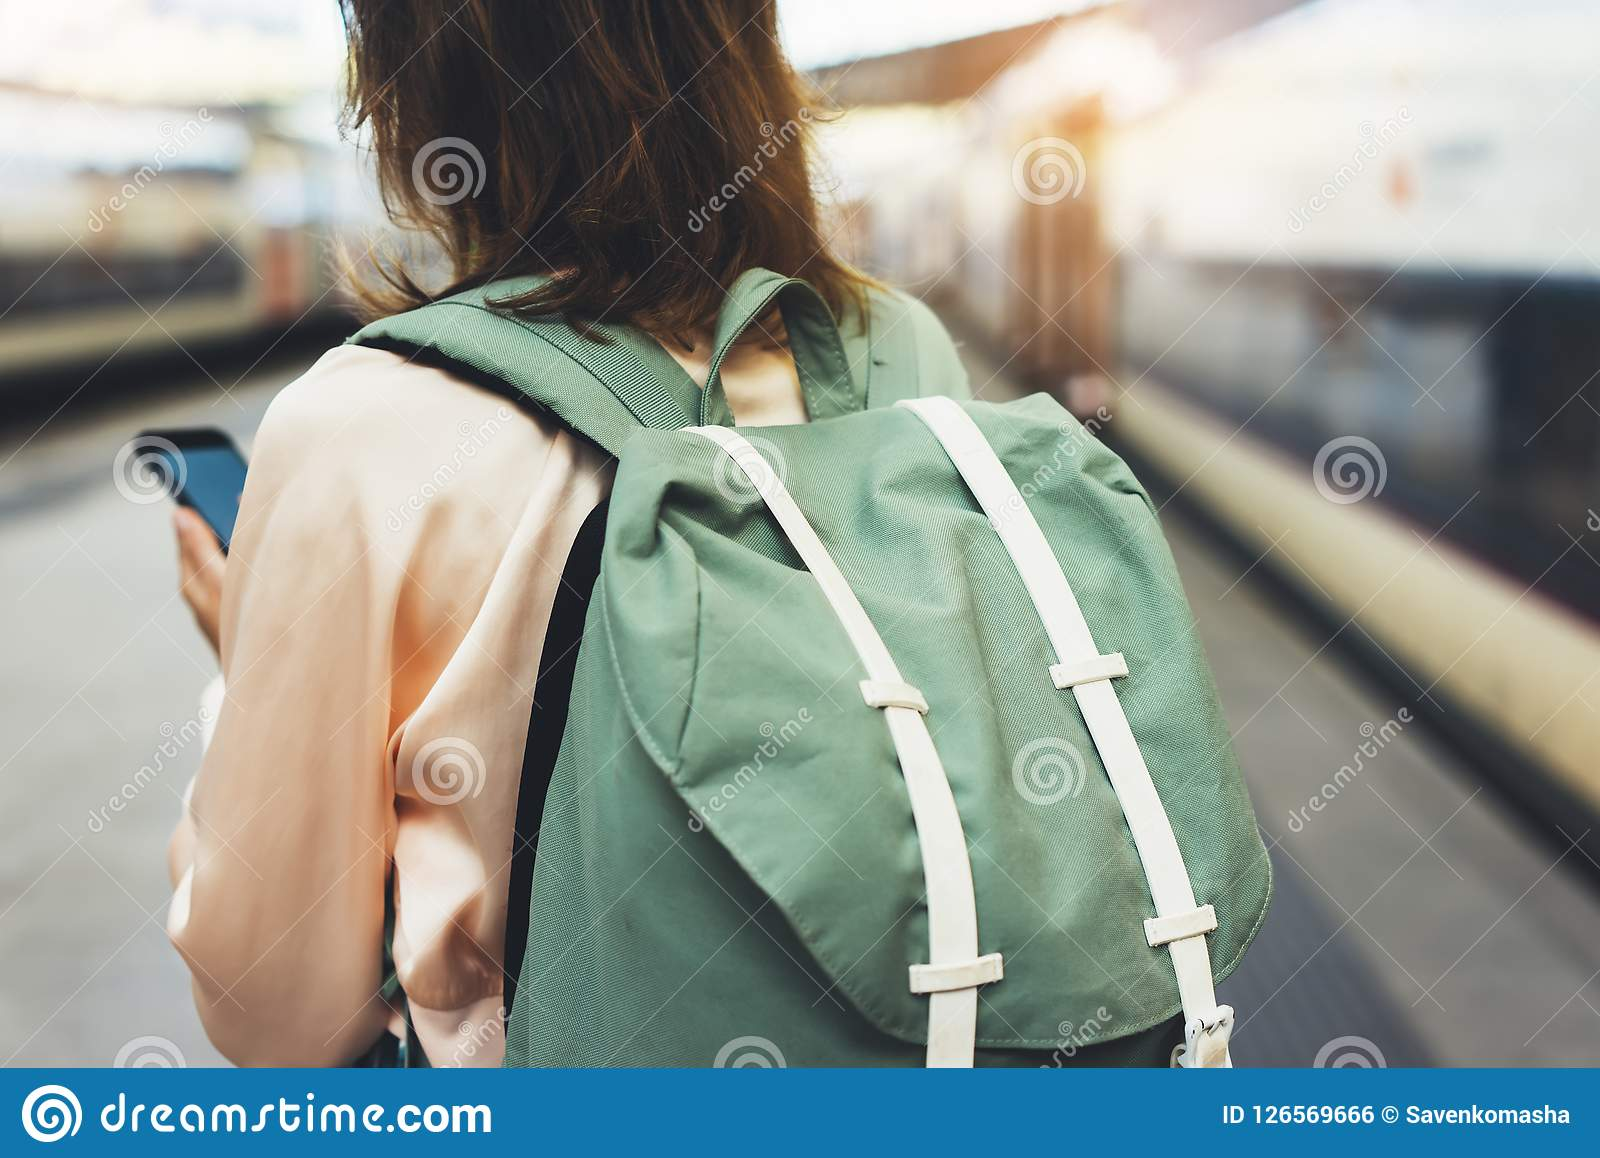 Enjoying travel. Young hipster woman waiting on the station platform with backpack on background electric train using smartphone